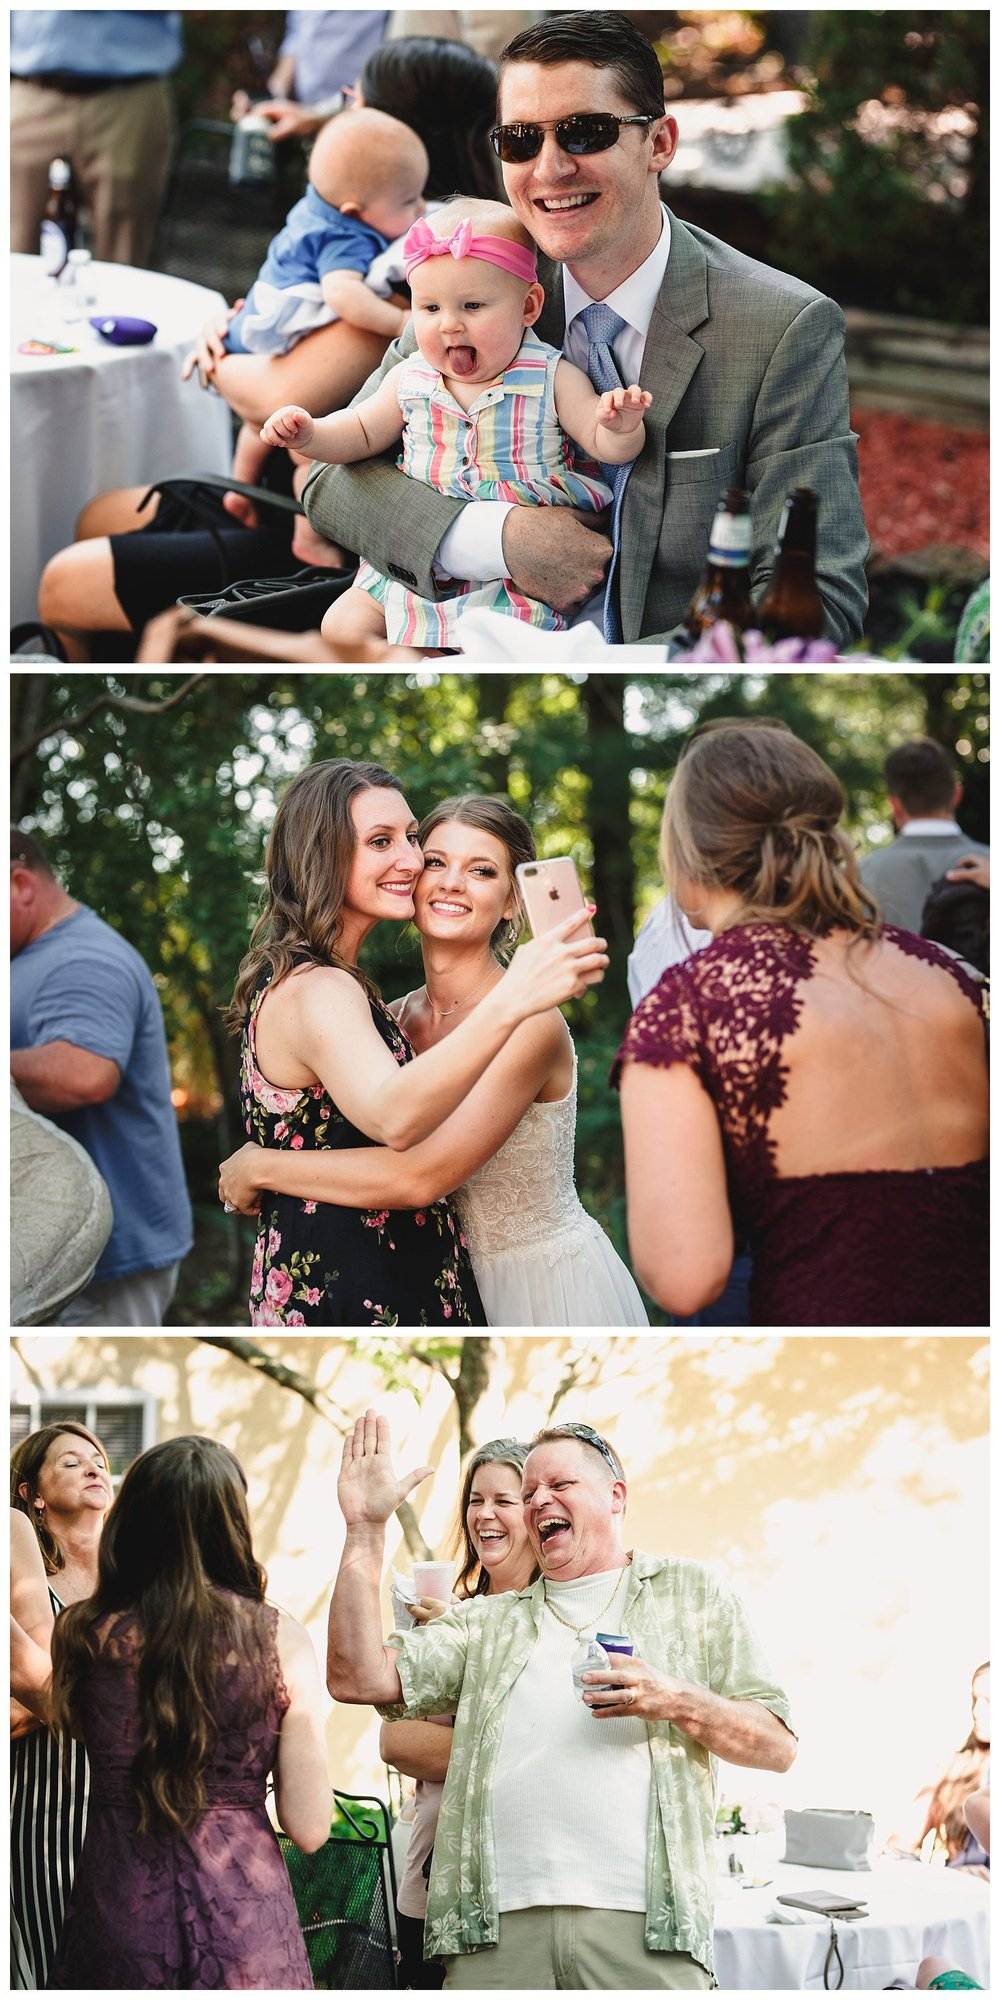 Kelsey_Diane_Photography_Kansas_City_Engagement_Wedding_Photographer_Midwest_Traveling_Missouri_Lee_Andrew_Hall_And_Garden_Blue_Springs_Wedding_Clayton_Kimberly_Summer_Wedding_0841.jpg